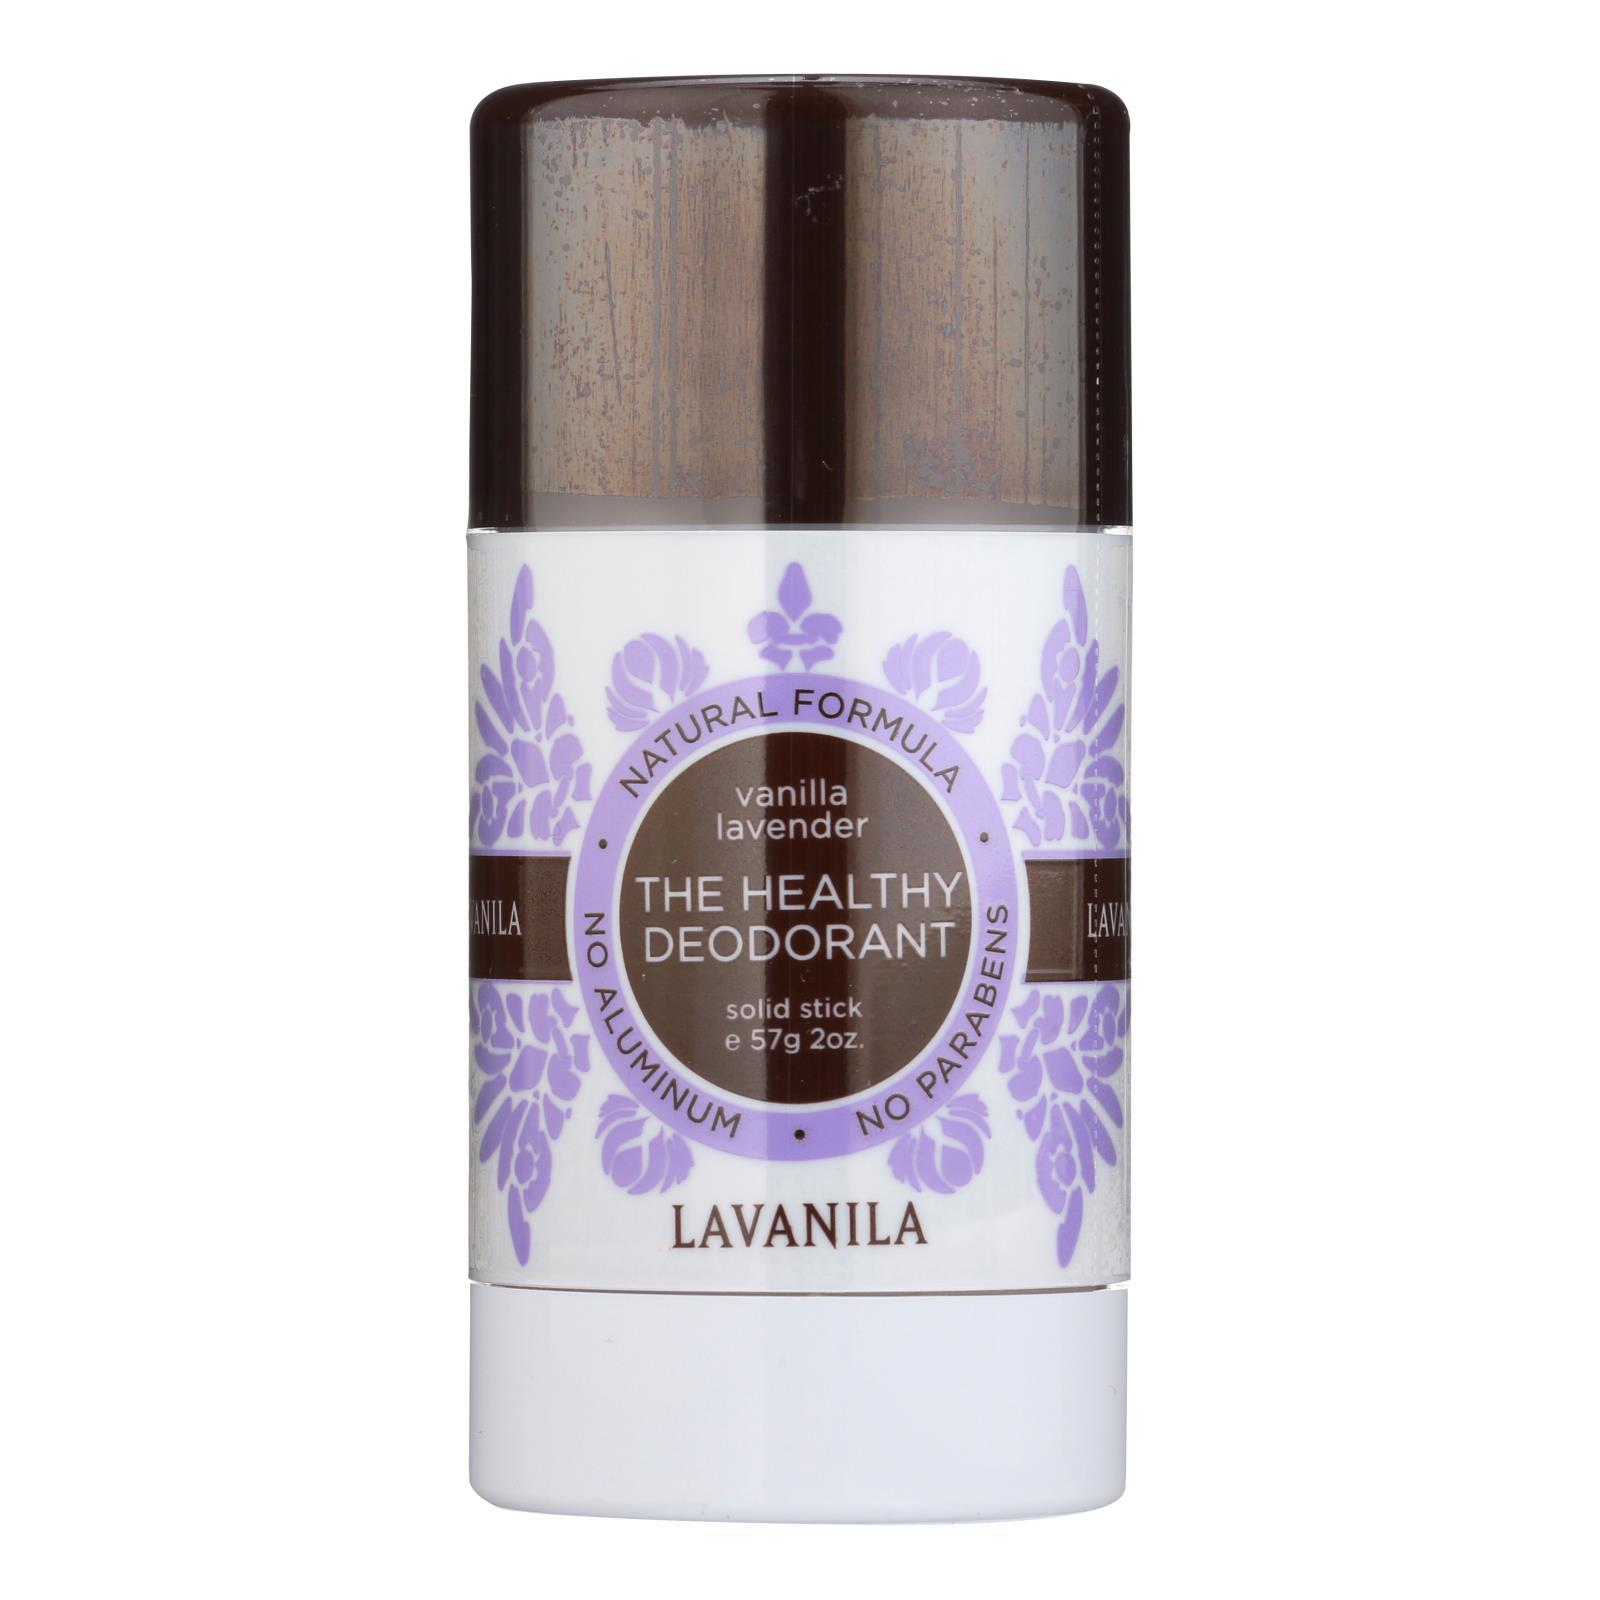 Lavanila Laboratories The Healthy Deodorant - Stick - Vanilla Lavender - 2 Oz - BeeGreen